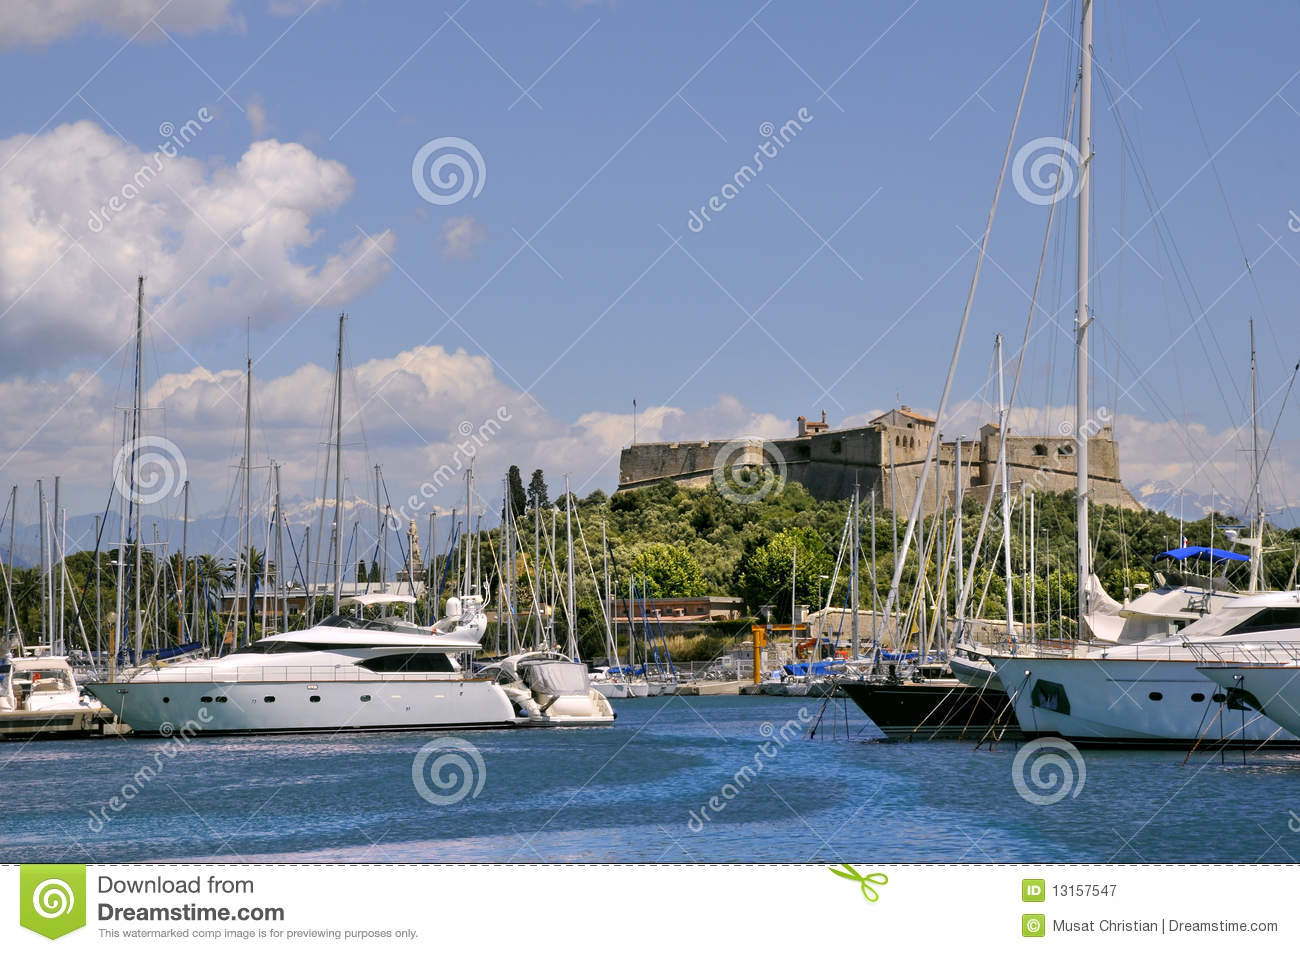 port of antibes in france royalty free stock photography image 13157547. Black Bedroom Furniture Sets. Home Design Ideas